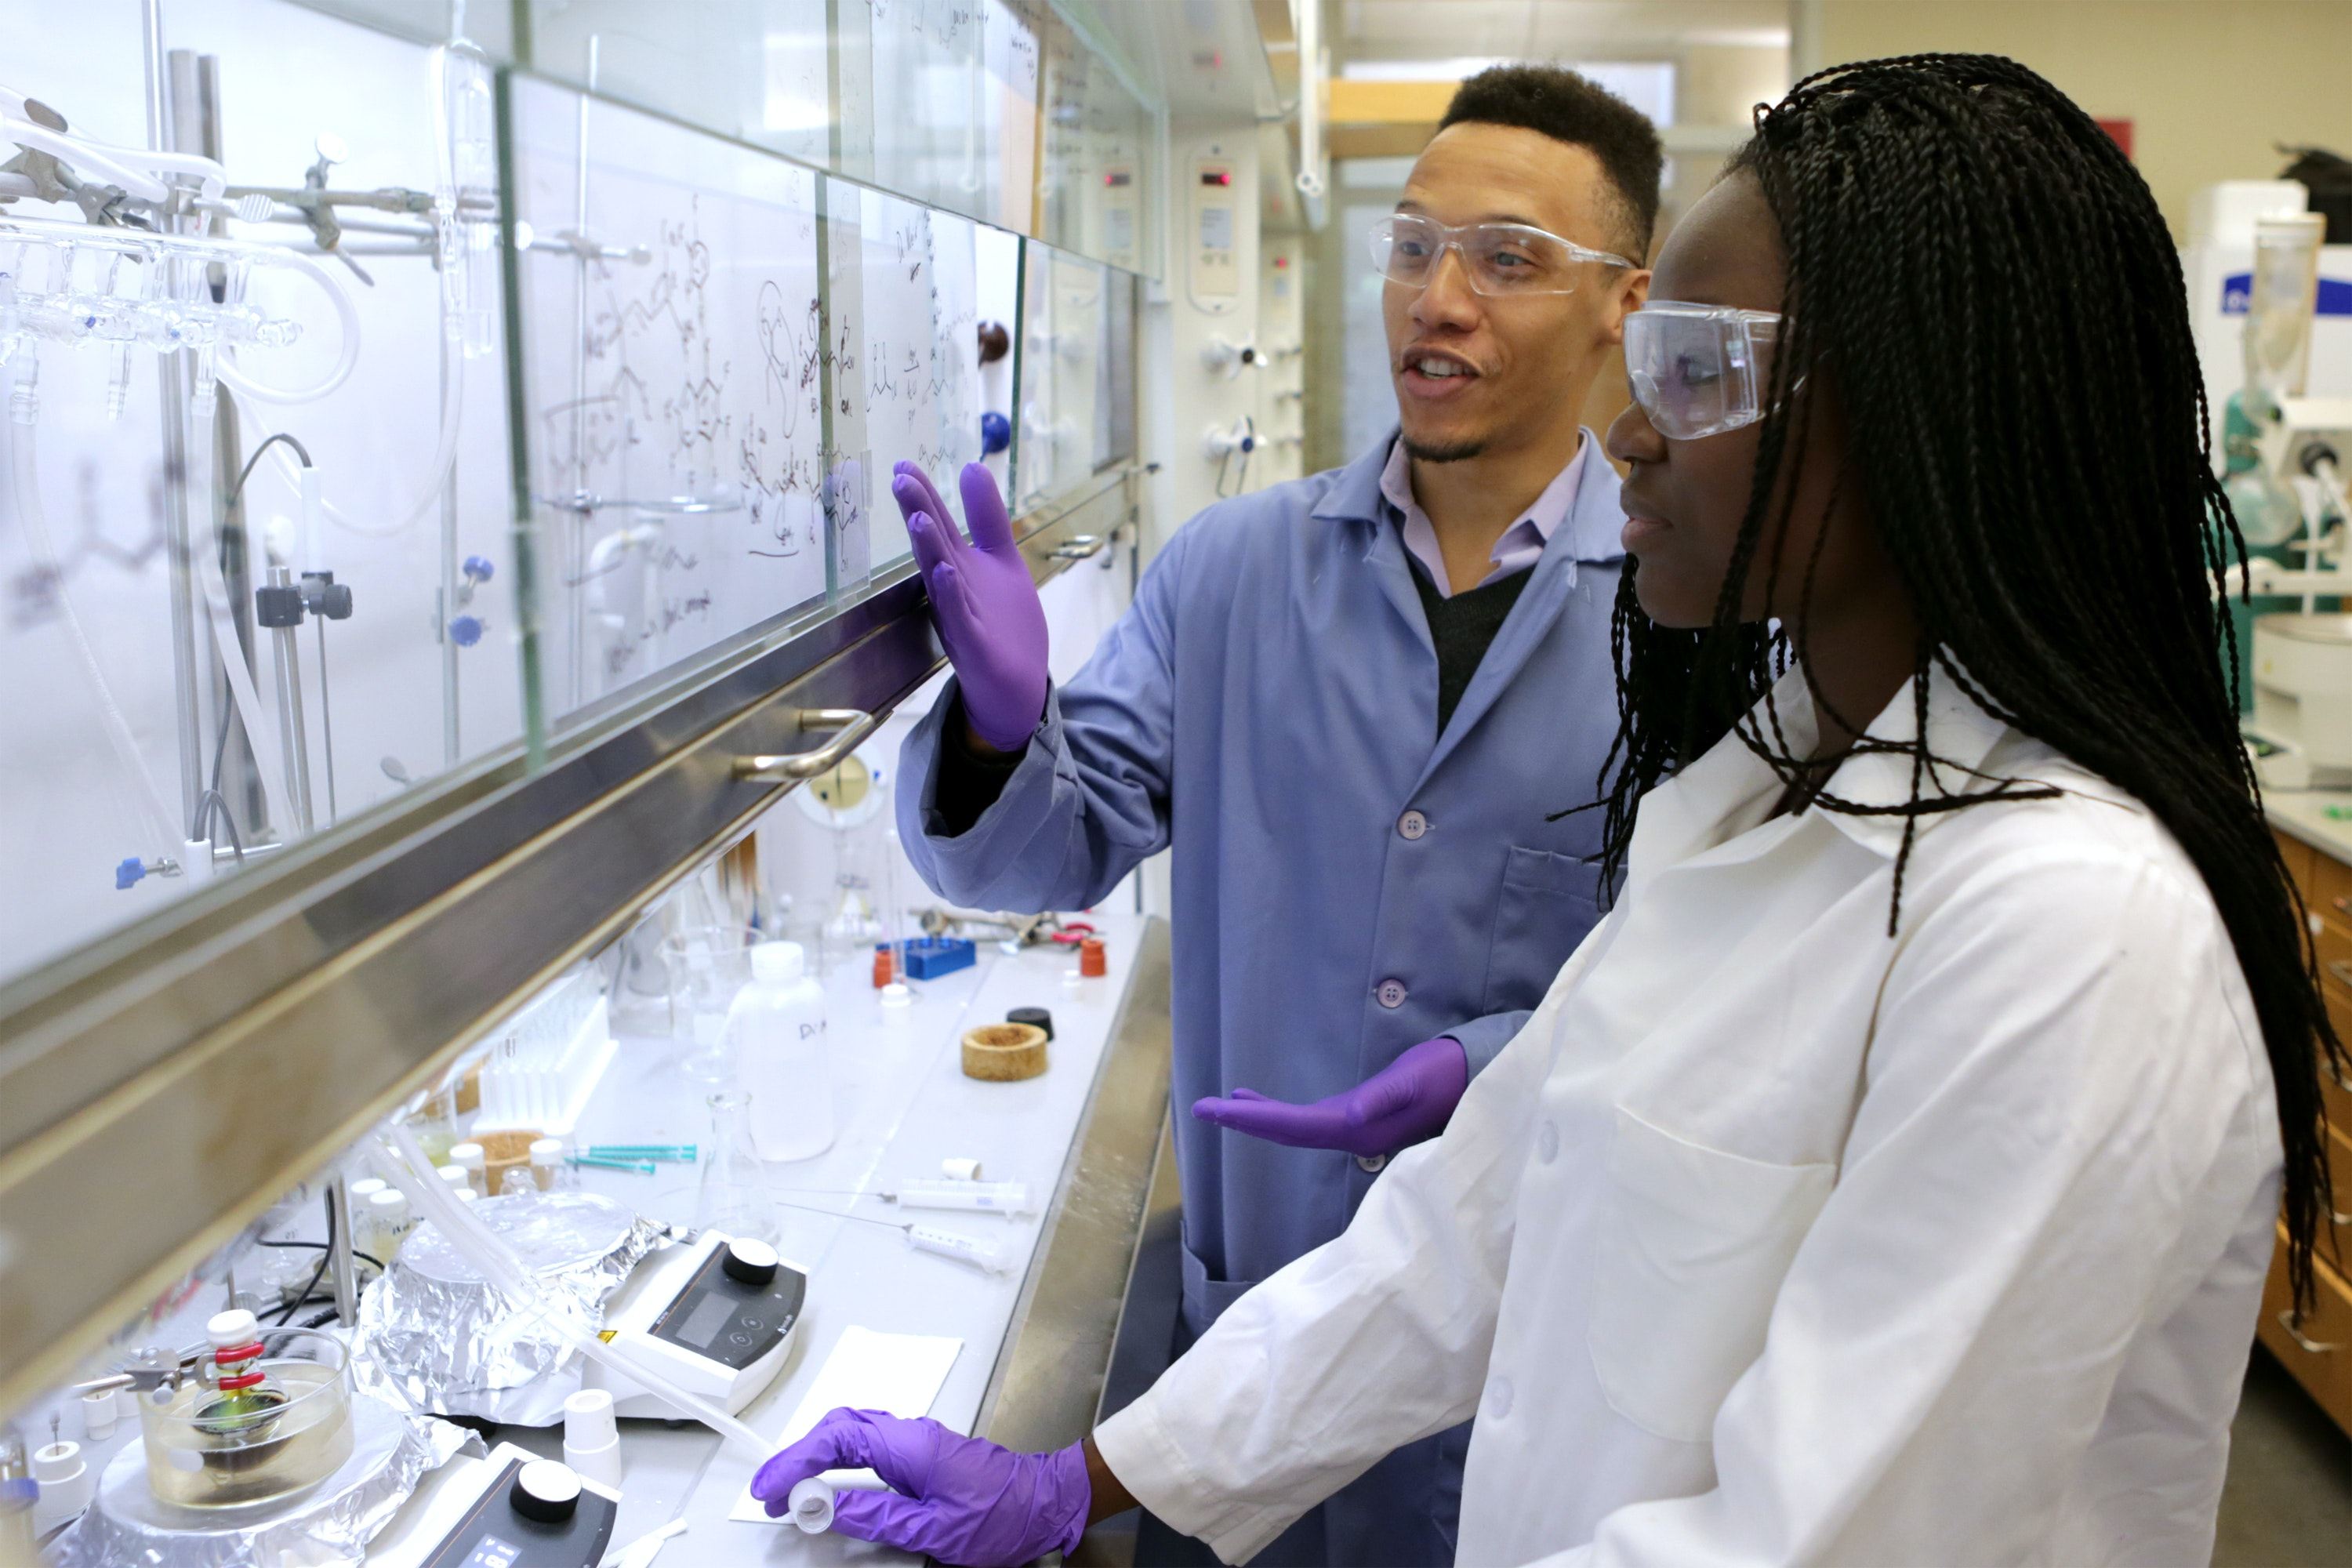 Assistant professor of chemistry Sidney Wilkerson-Hill, left, in a chemistry lab at the University of North Carolina at Chapel Hill, with Bolatito Babatunde, a student in the Chancellor's Science Scholars program at UNC. Lars Sahl / UNC Chemistry, CC BY